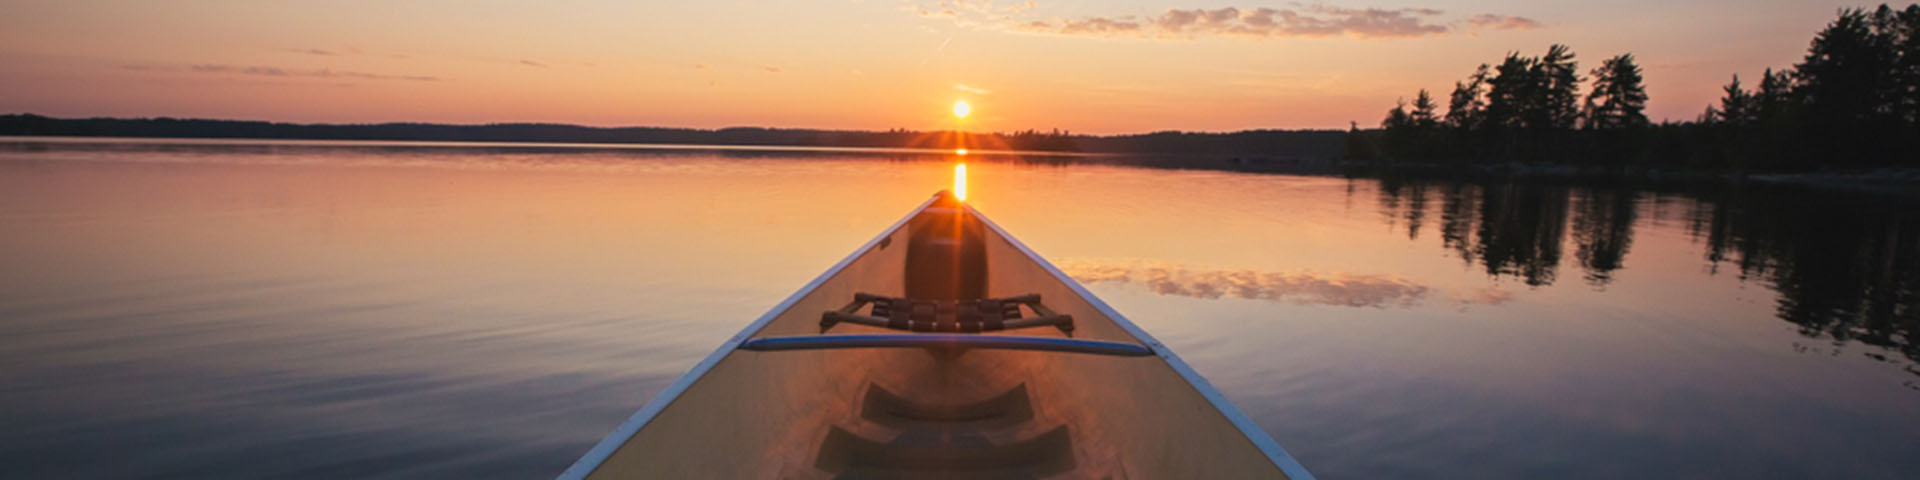 Equipment Rental for your Quetico Eco-Adventure by Voyageur Wilderness Programme - Image 137